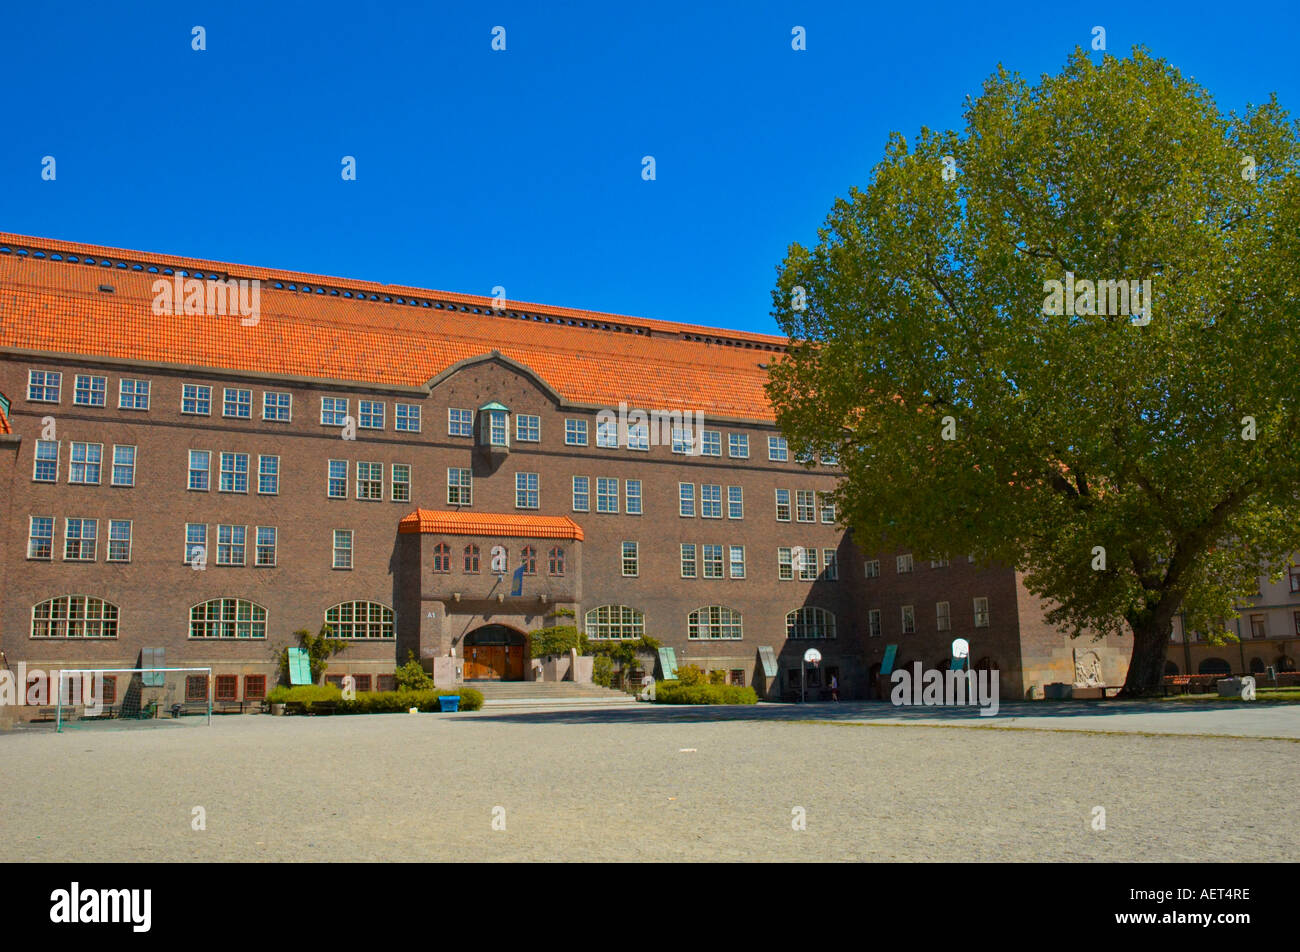 The empty school yard of Eastern Secondary School in Östermalm district in central Stockholm EU - Stock Image